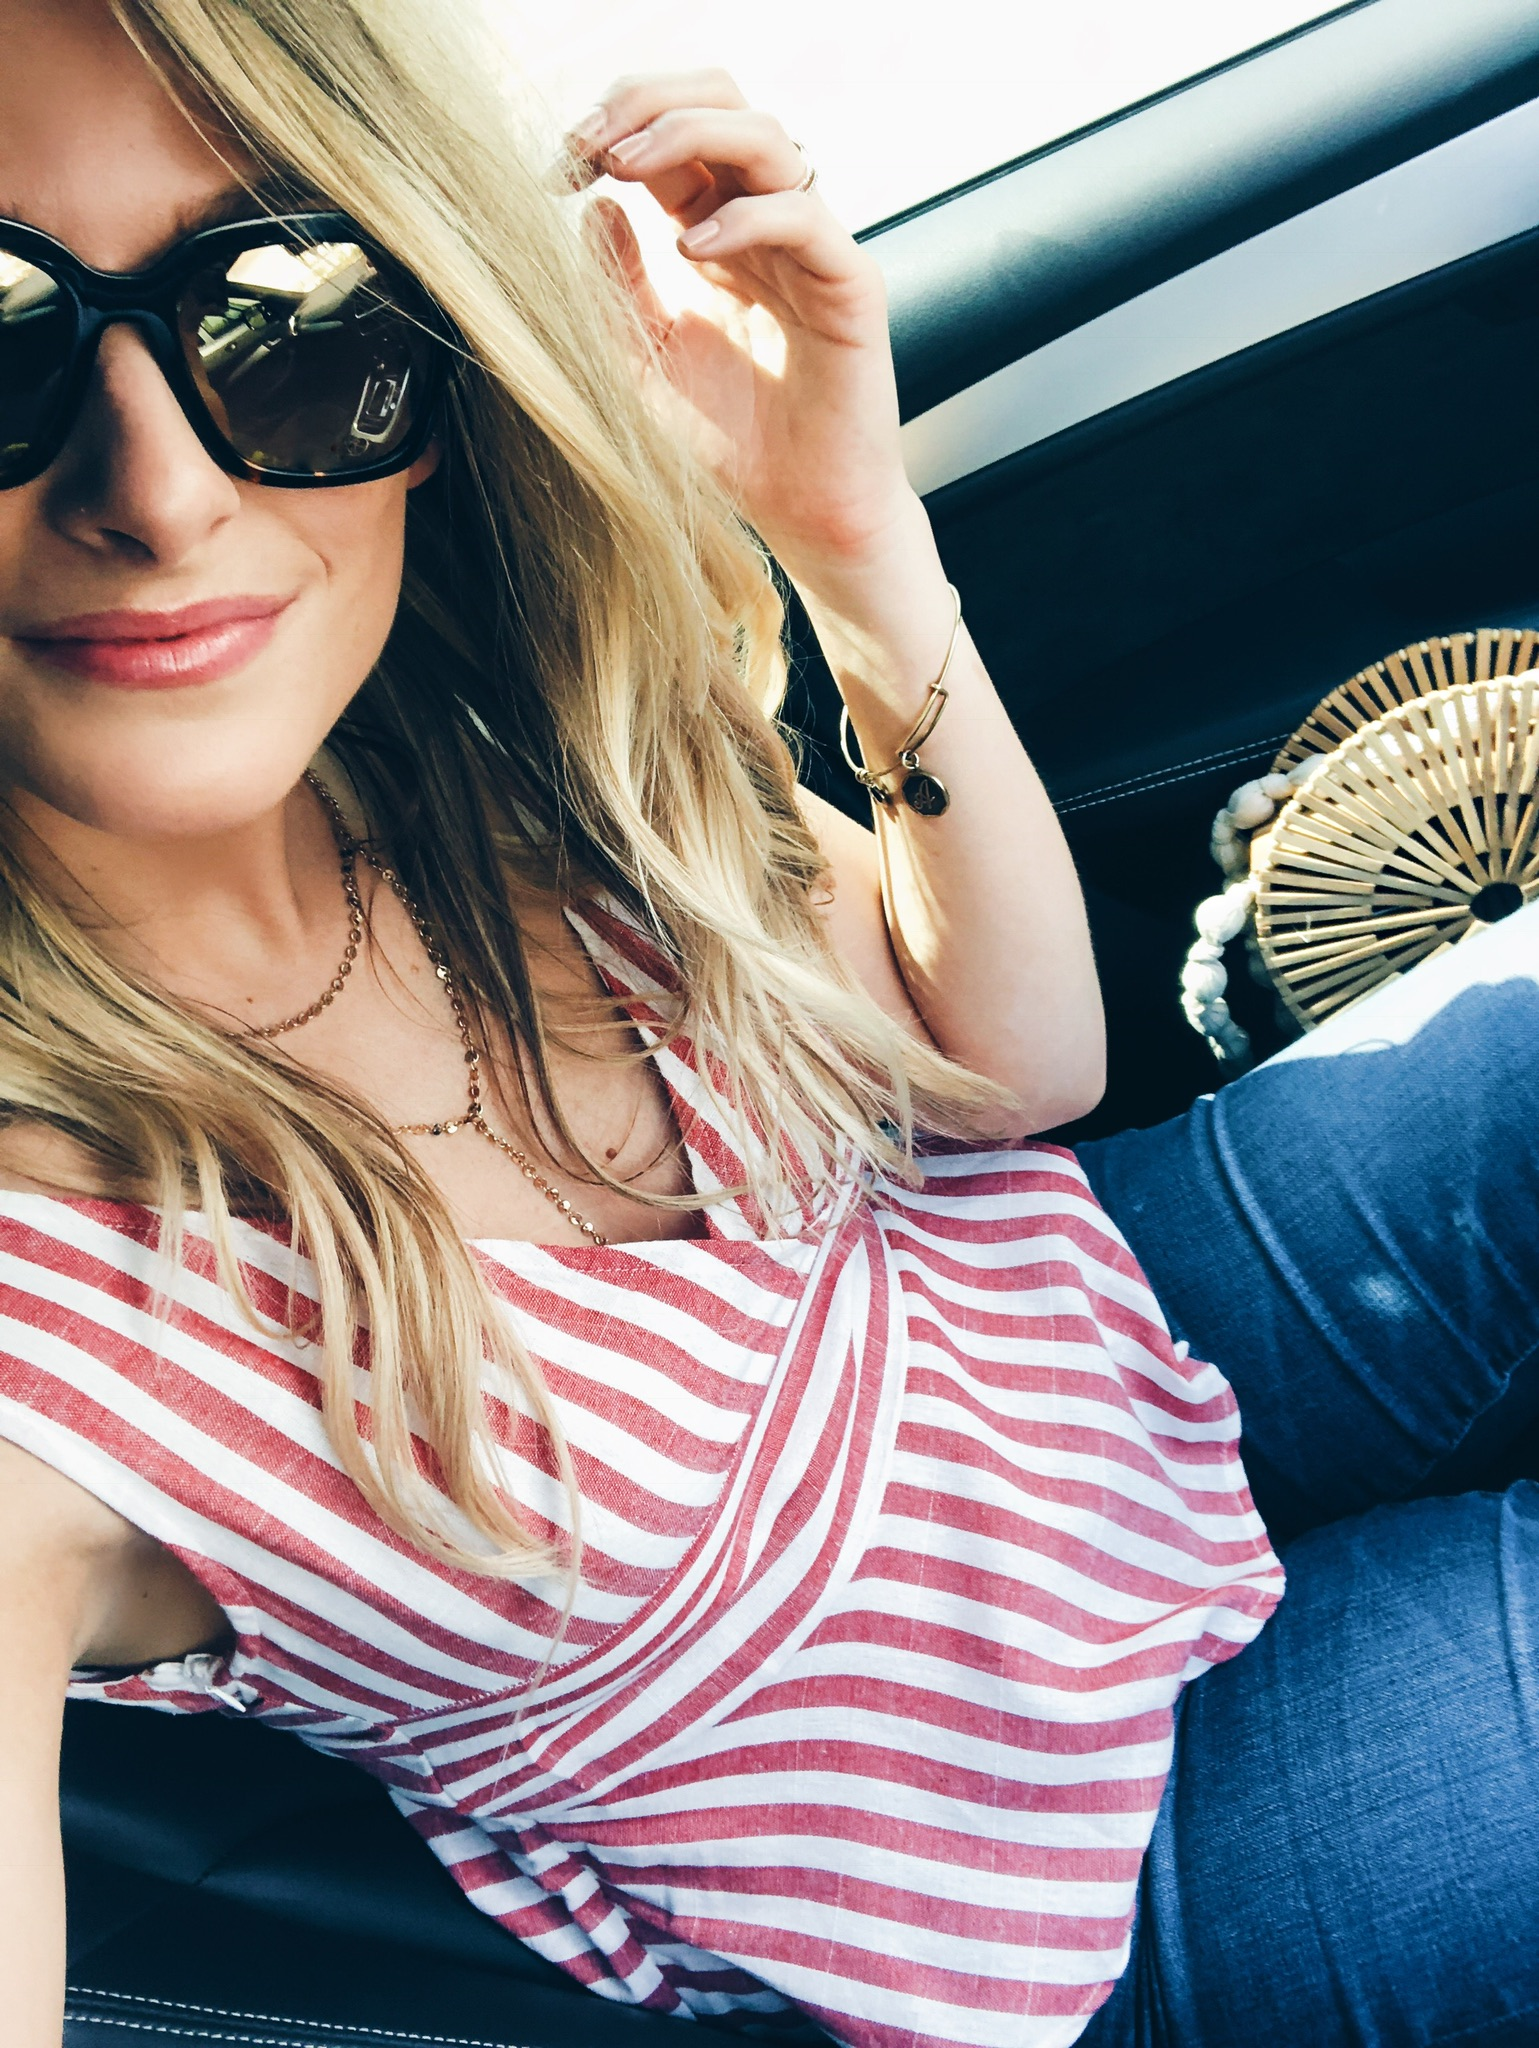 1 person, red and white striped top with jeans on girl, fashion blogger in car